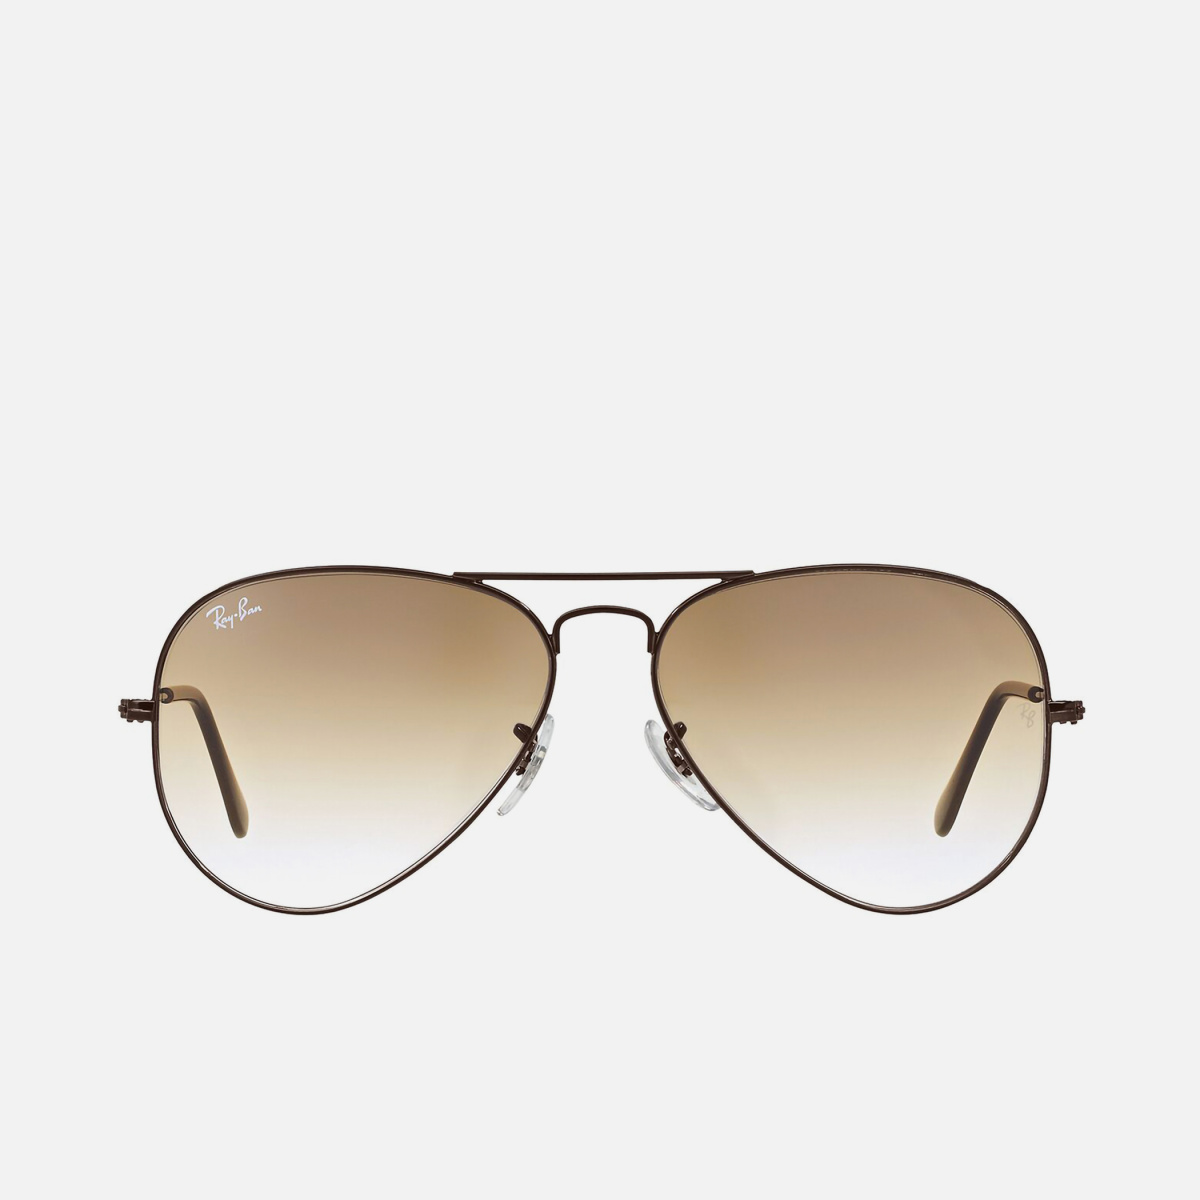 RAY-BAN Men UV-Protected Aviator Sunglasses - 0RB3025-014-51-55